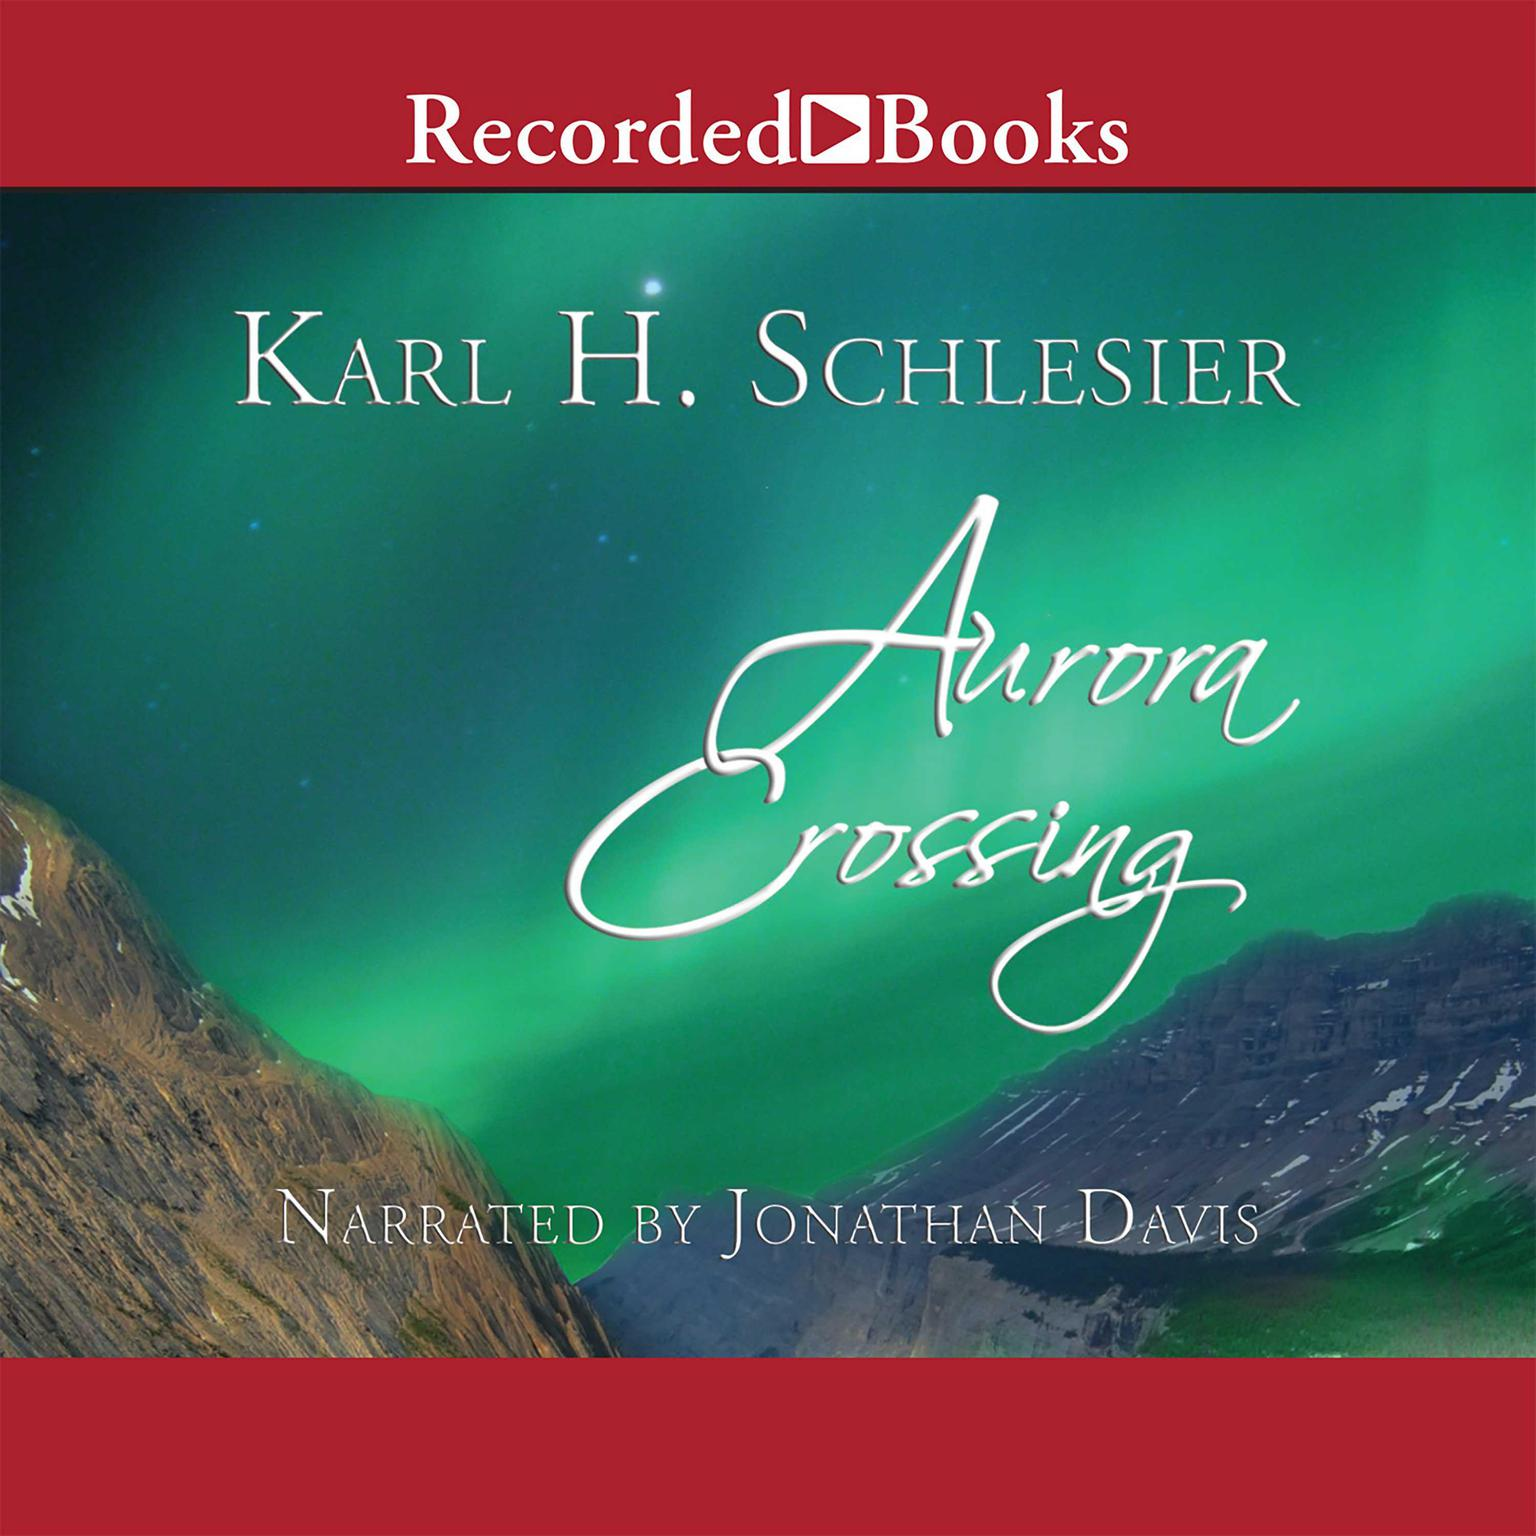 Printable Aurora Crossing Audiobook Cover Art